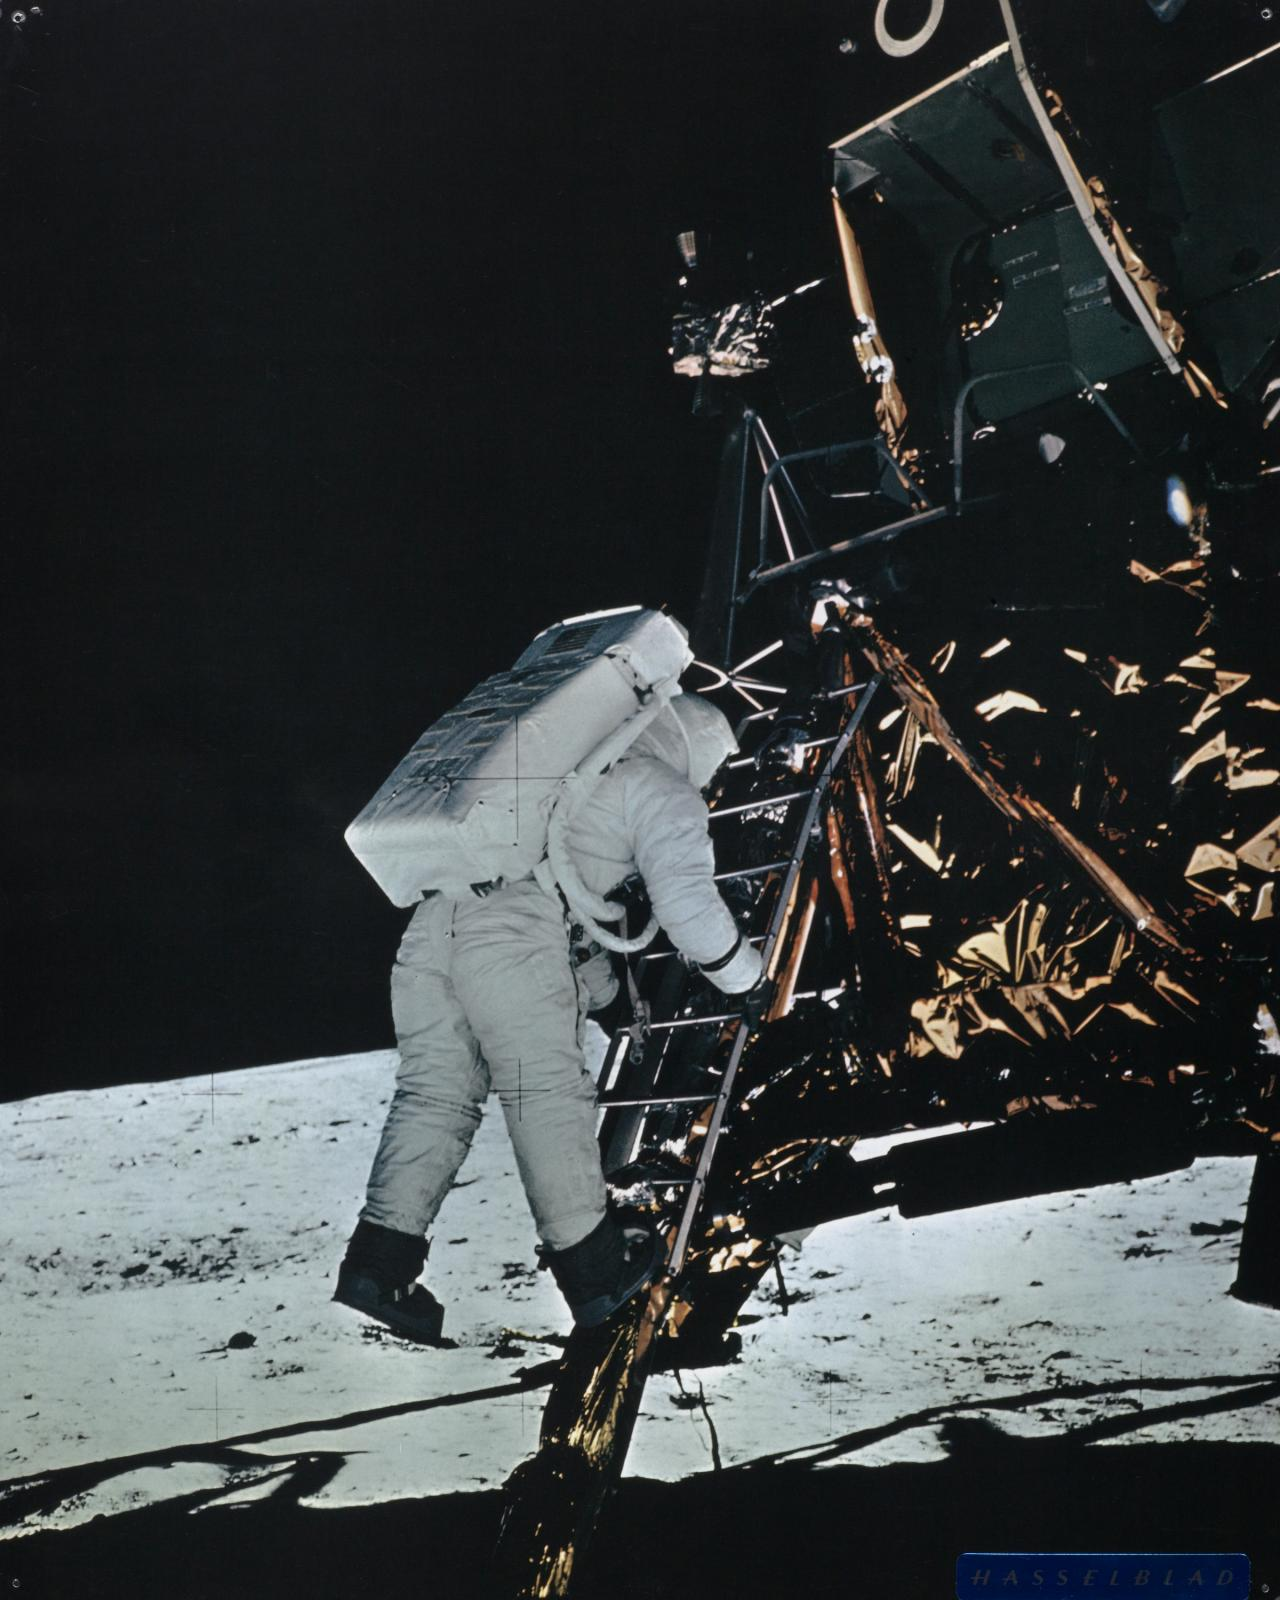 Edwin Aldrin about to jump from luna module ladder